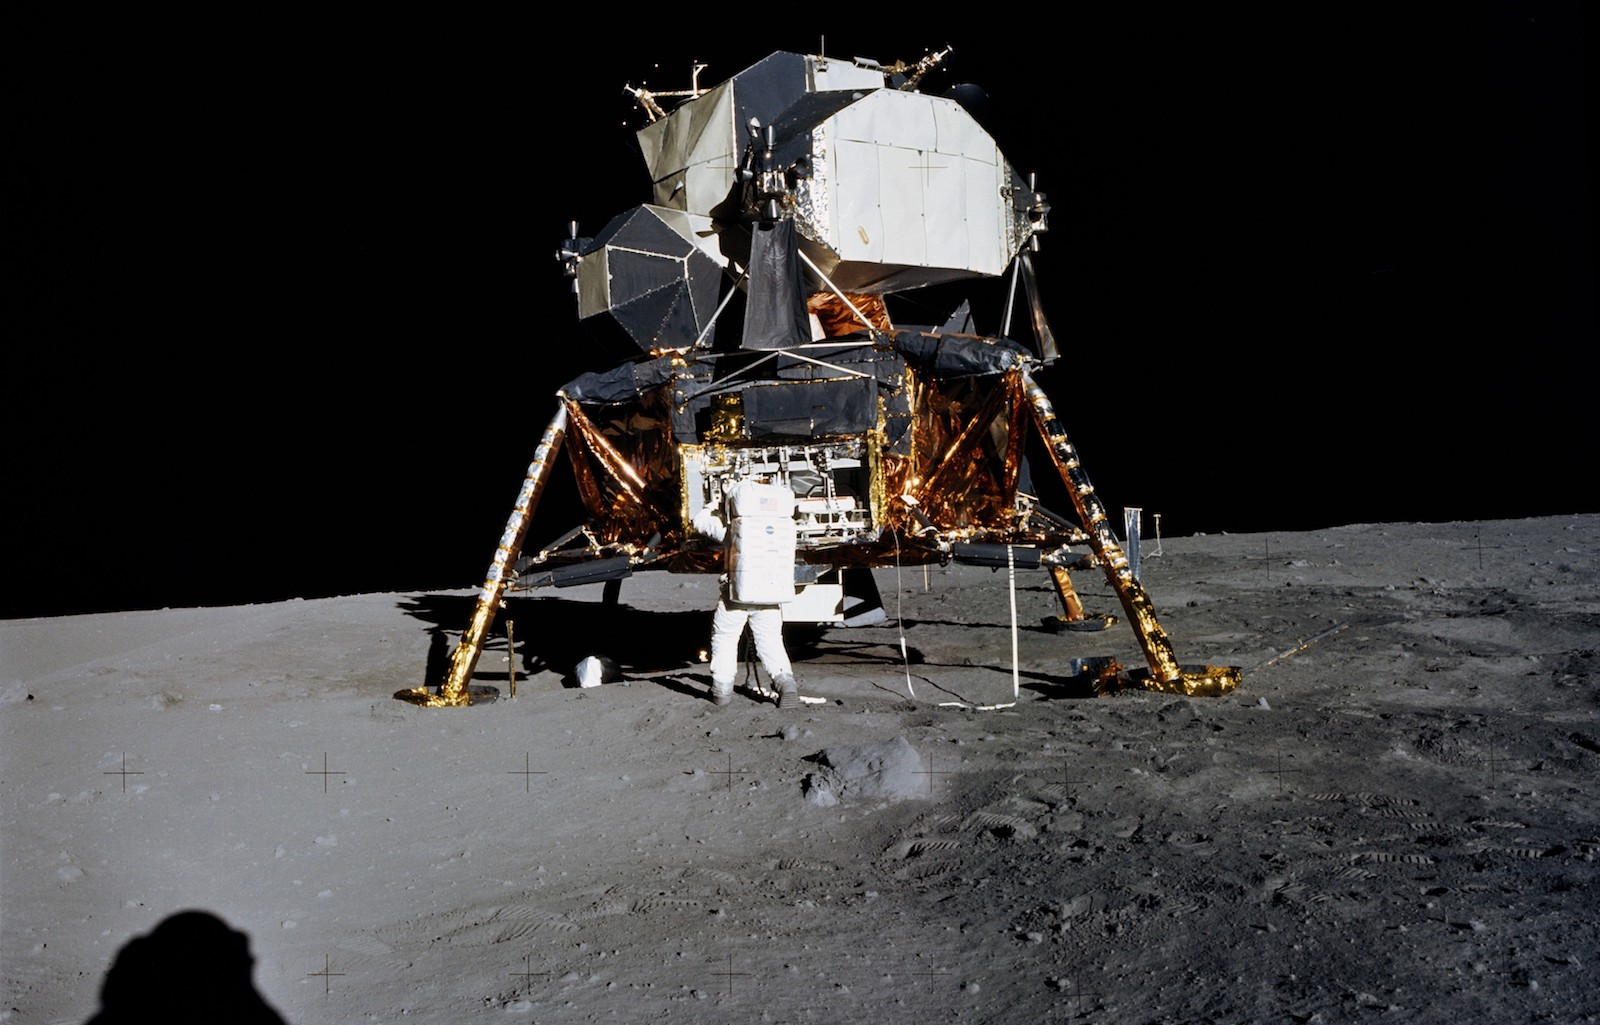 Astronaut Buzz Aldrin carrying out maintenance work on lunar module <i>Eagle</i> during the Apollo 11 lunar mission.